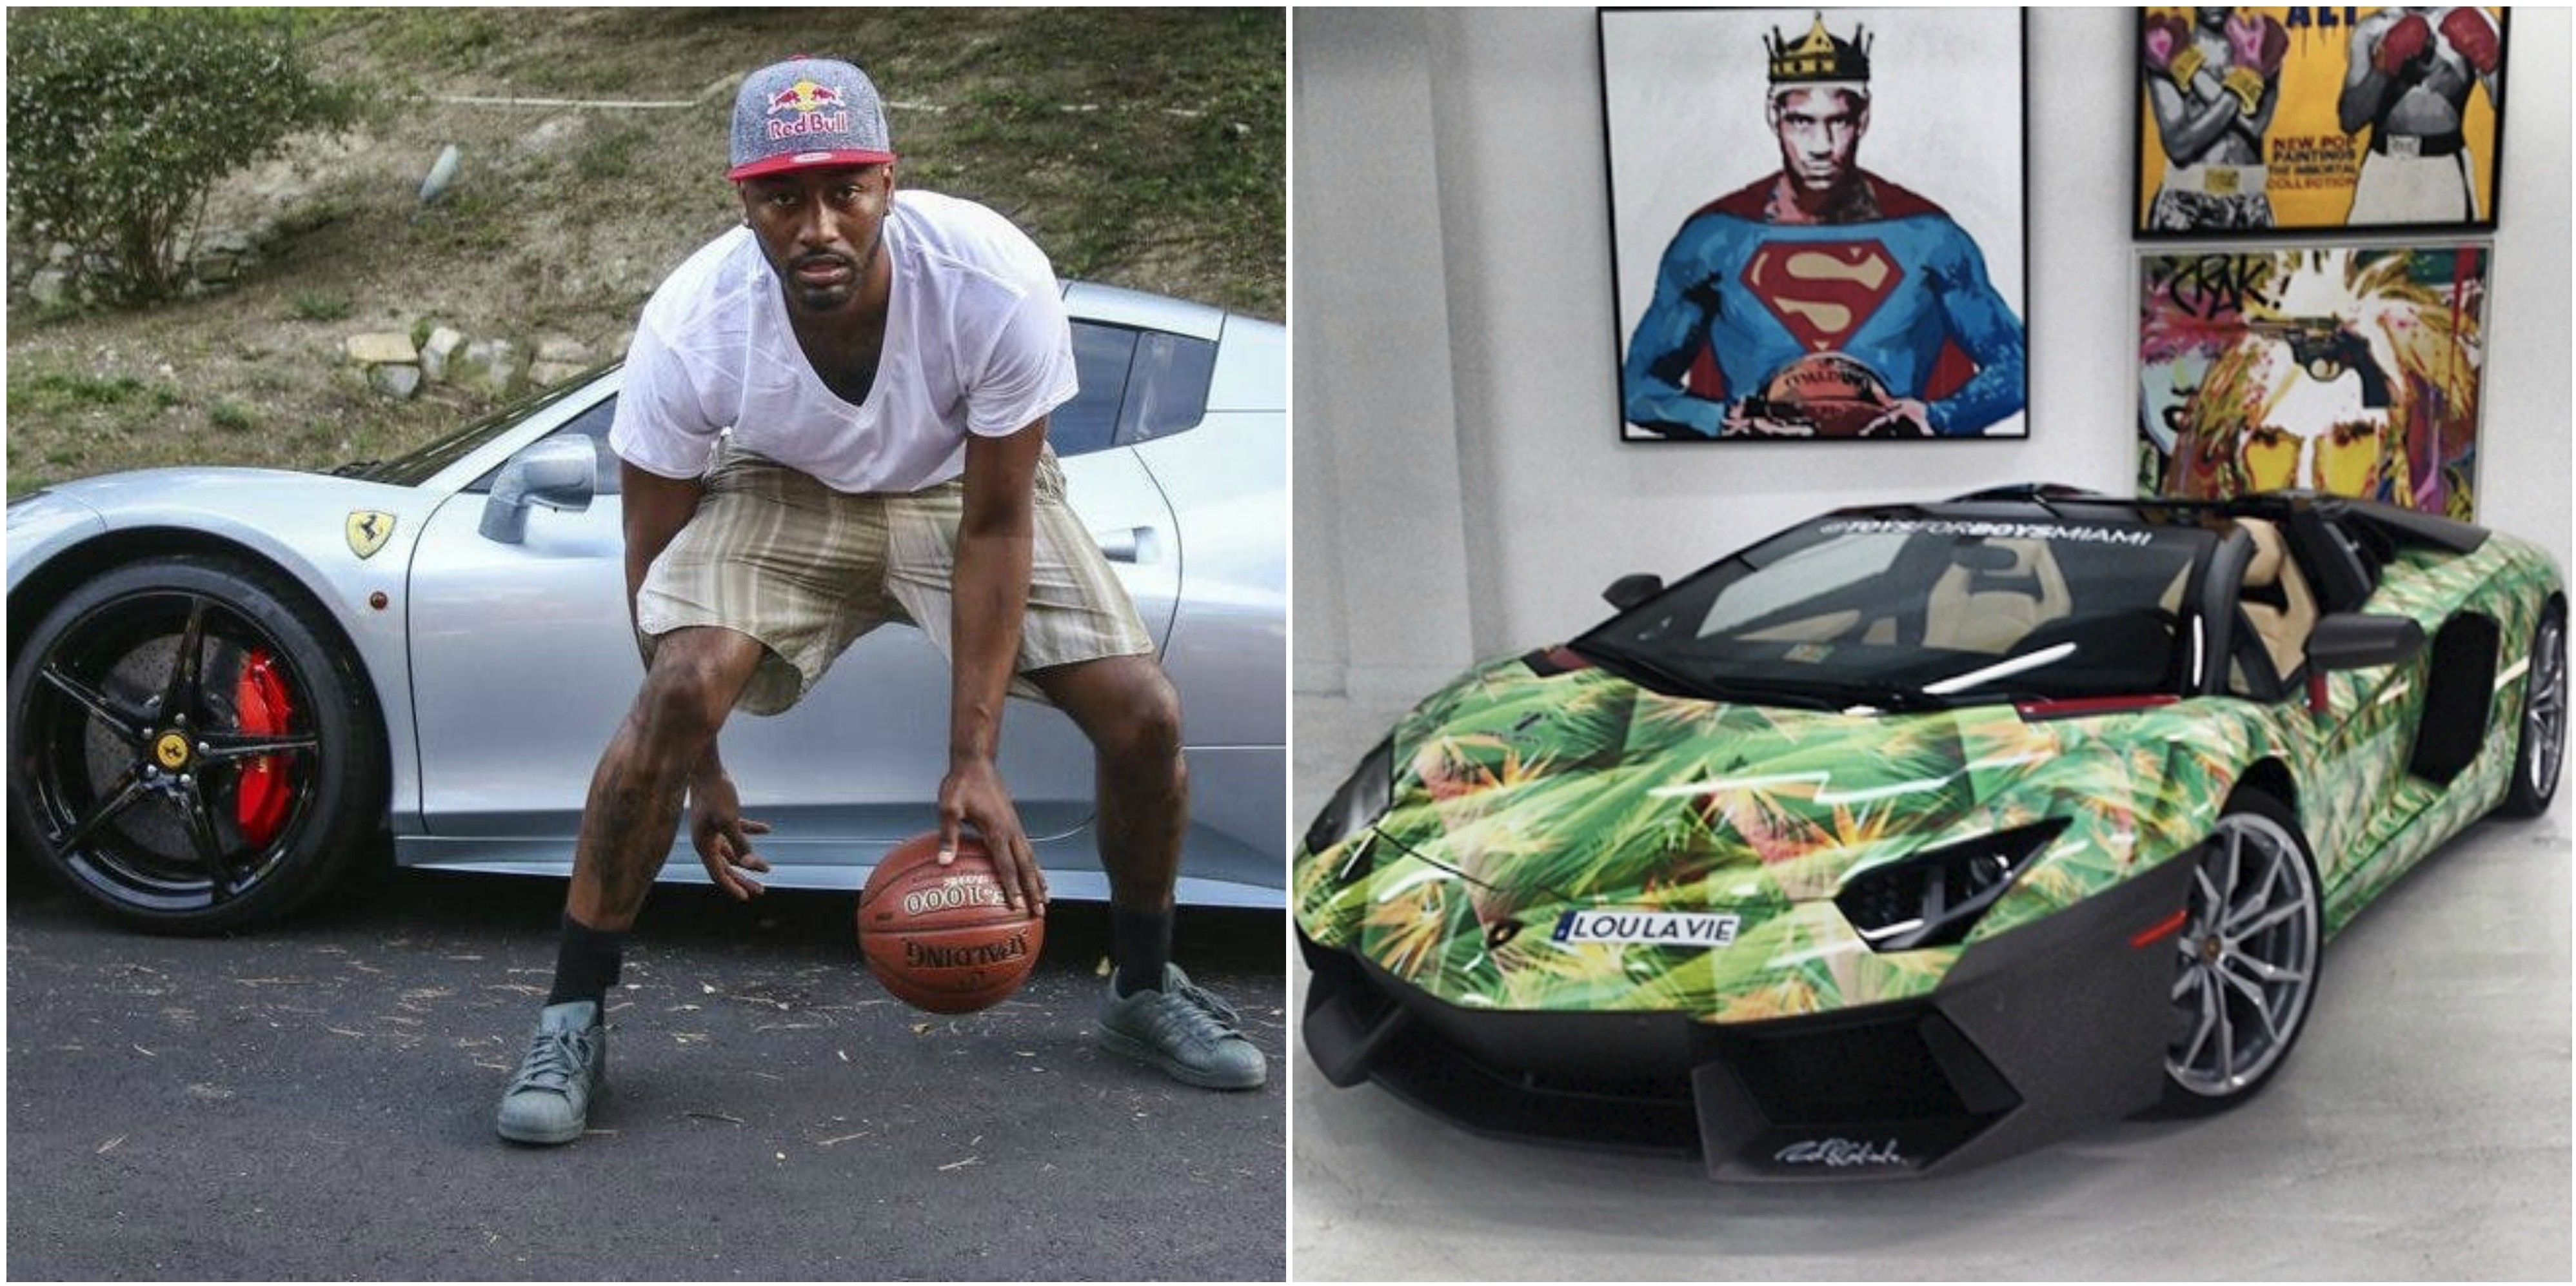 Nba Players Cars: 25 NBA Players With The Most Baller Cars In The League